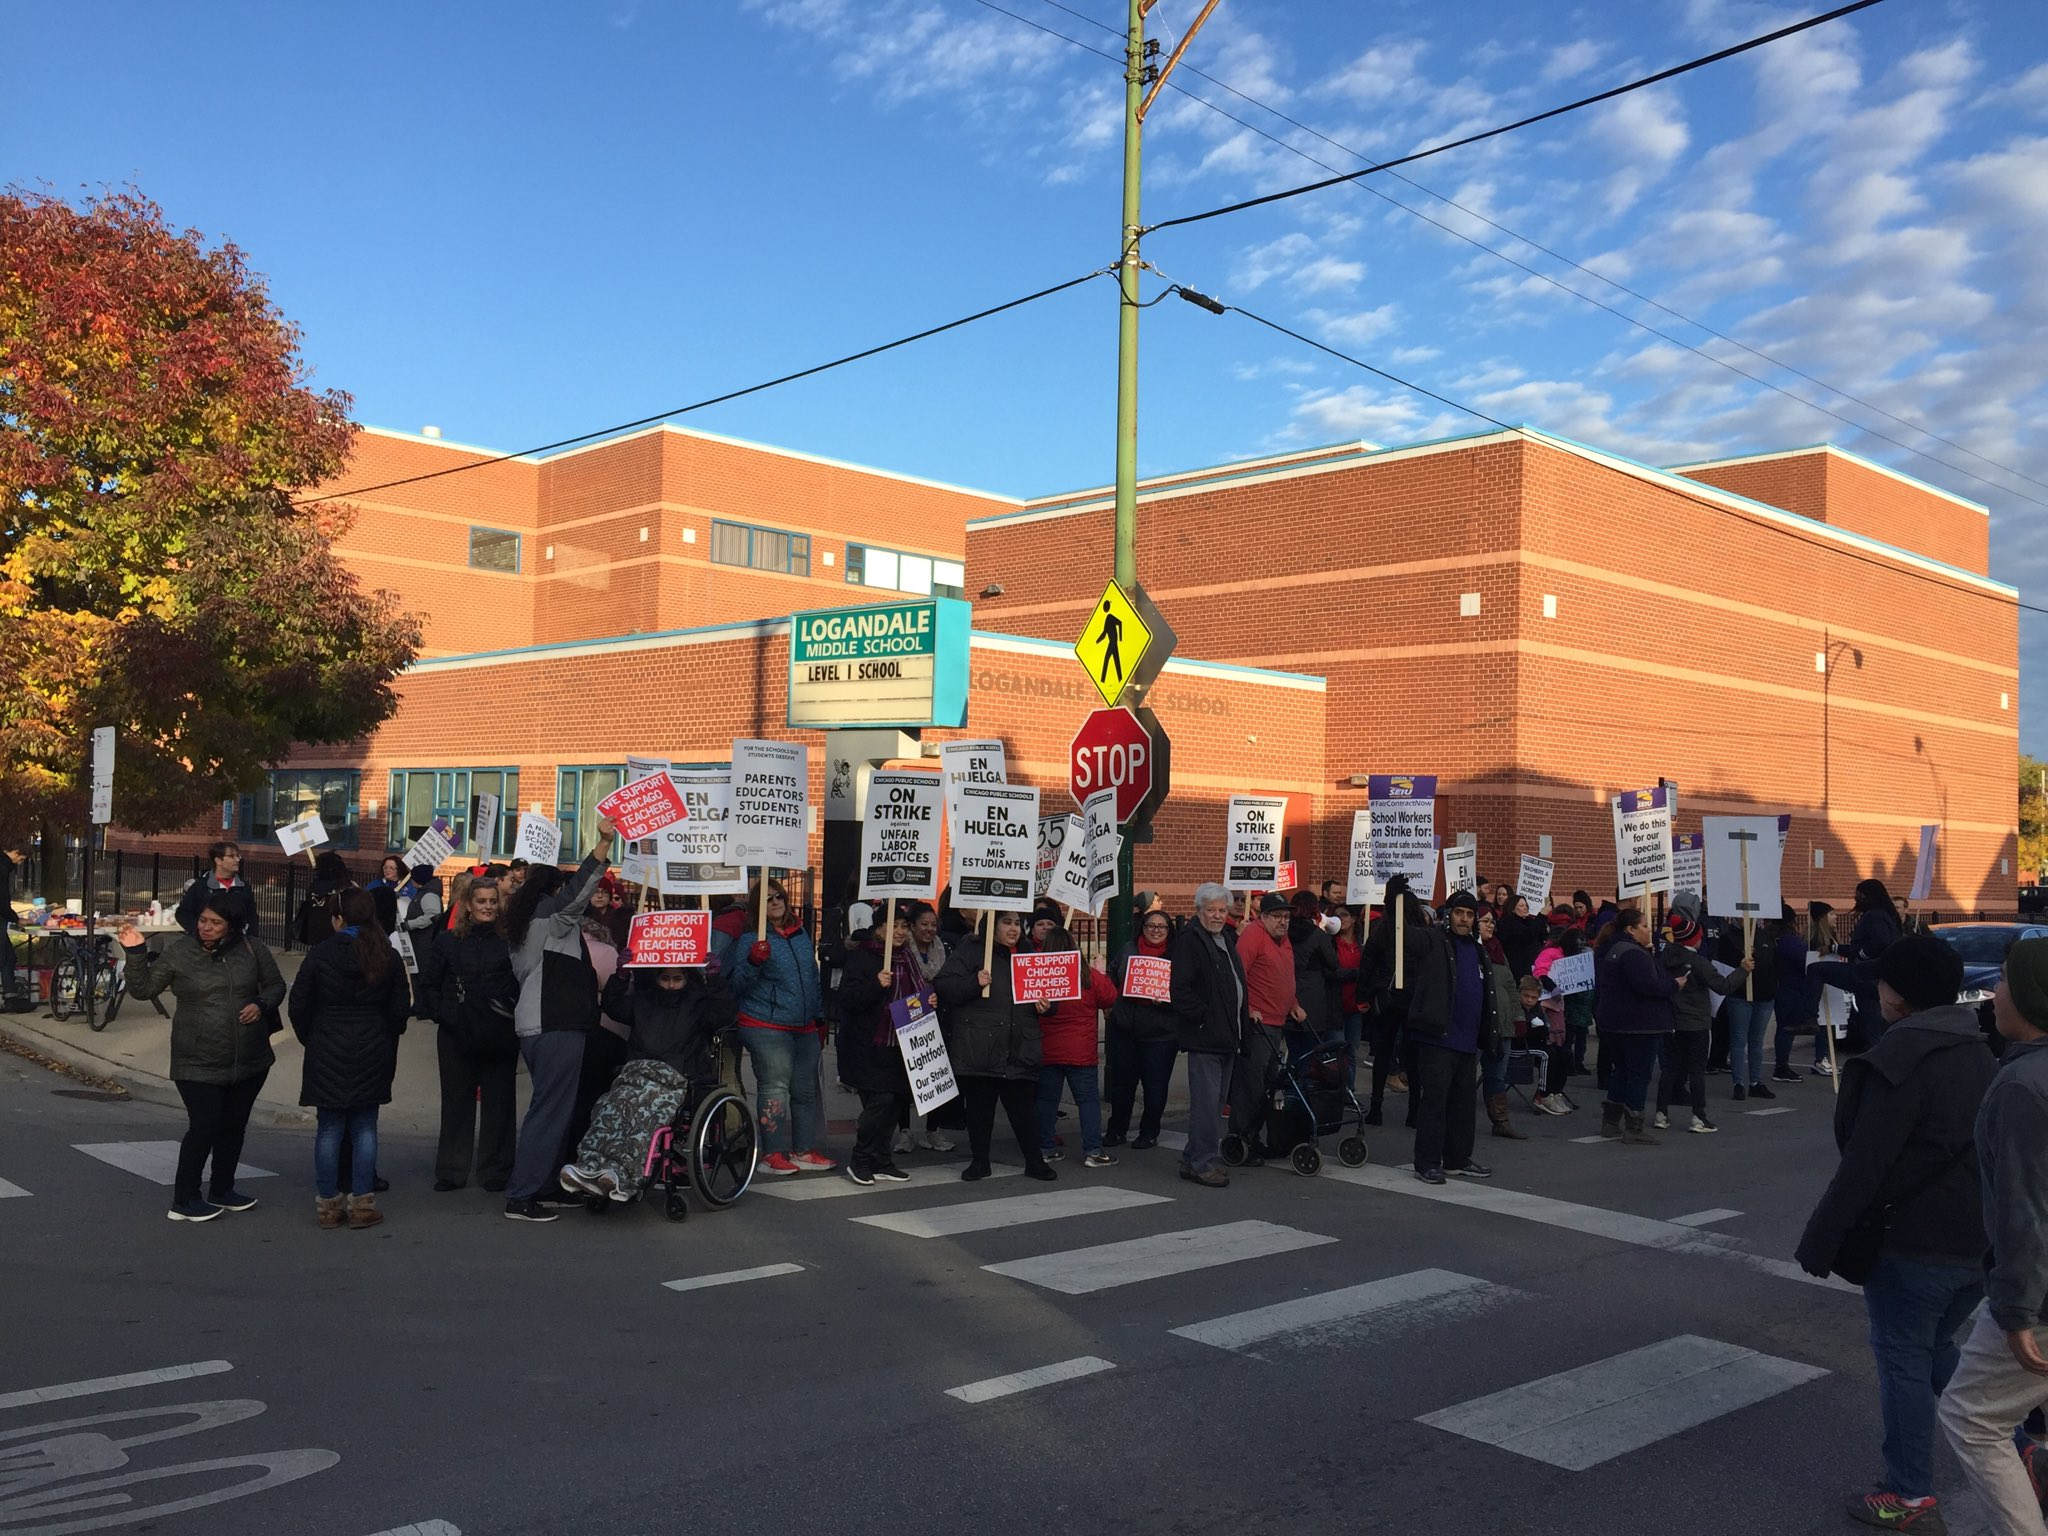 """No better way to start the day than being greeted by a picket line of raucous teachers chanting: """"get up, get down, Chicago is a union town!"""" https://t.co/RldM0DkupK"""